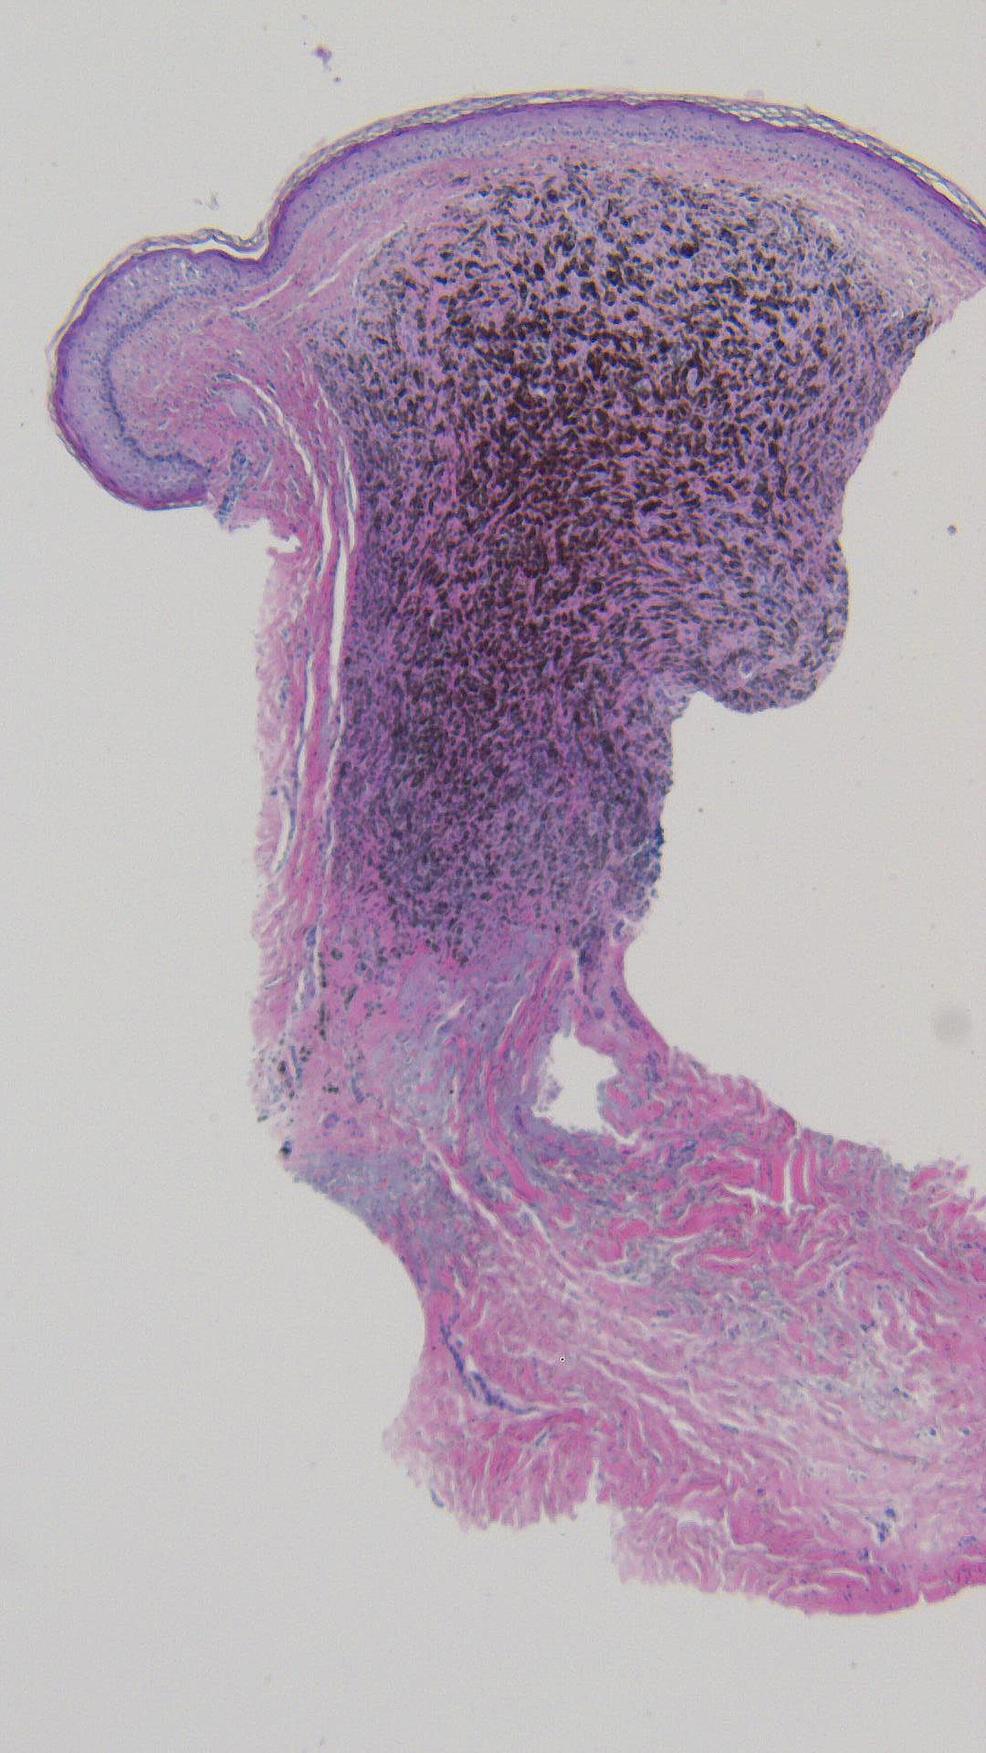 Microscopic-examination-of-the-punch-biopsy-of-the-tumoral-melanosis-on-the-left-parietal-scalp.